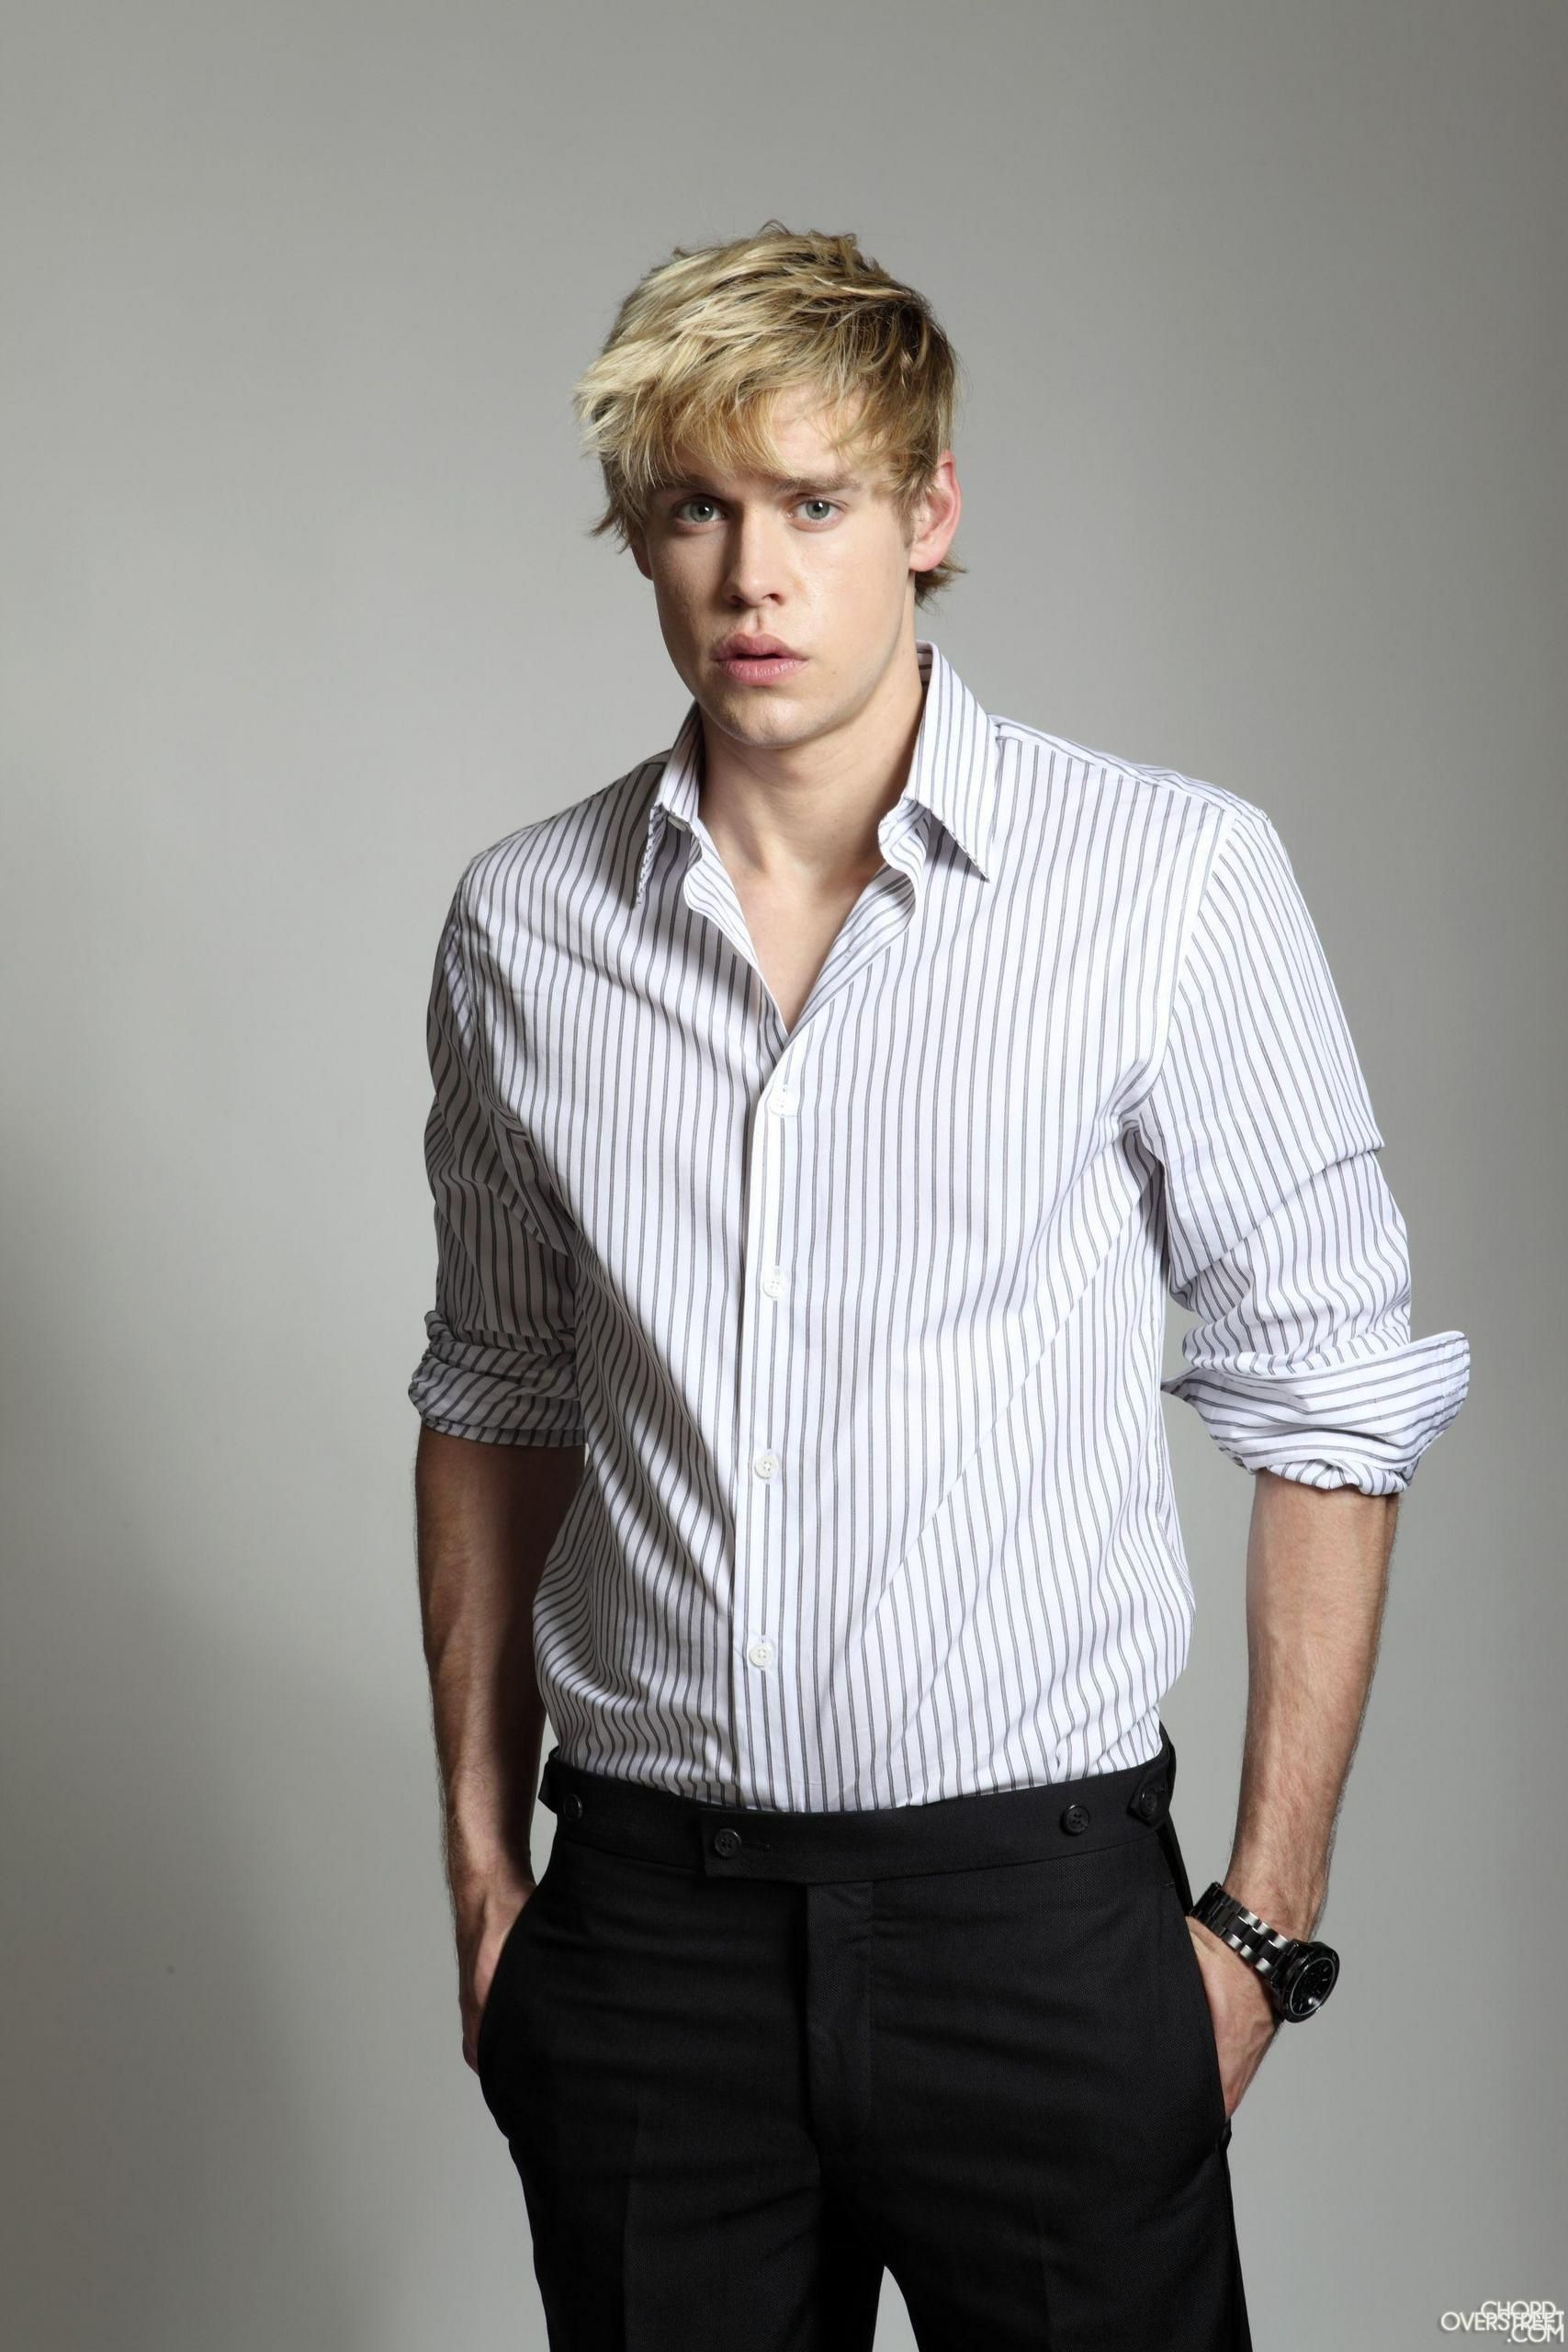 chord overstreet 2014 abs www pixshark images